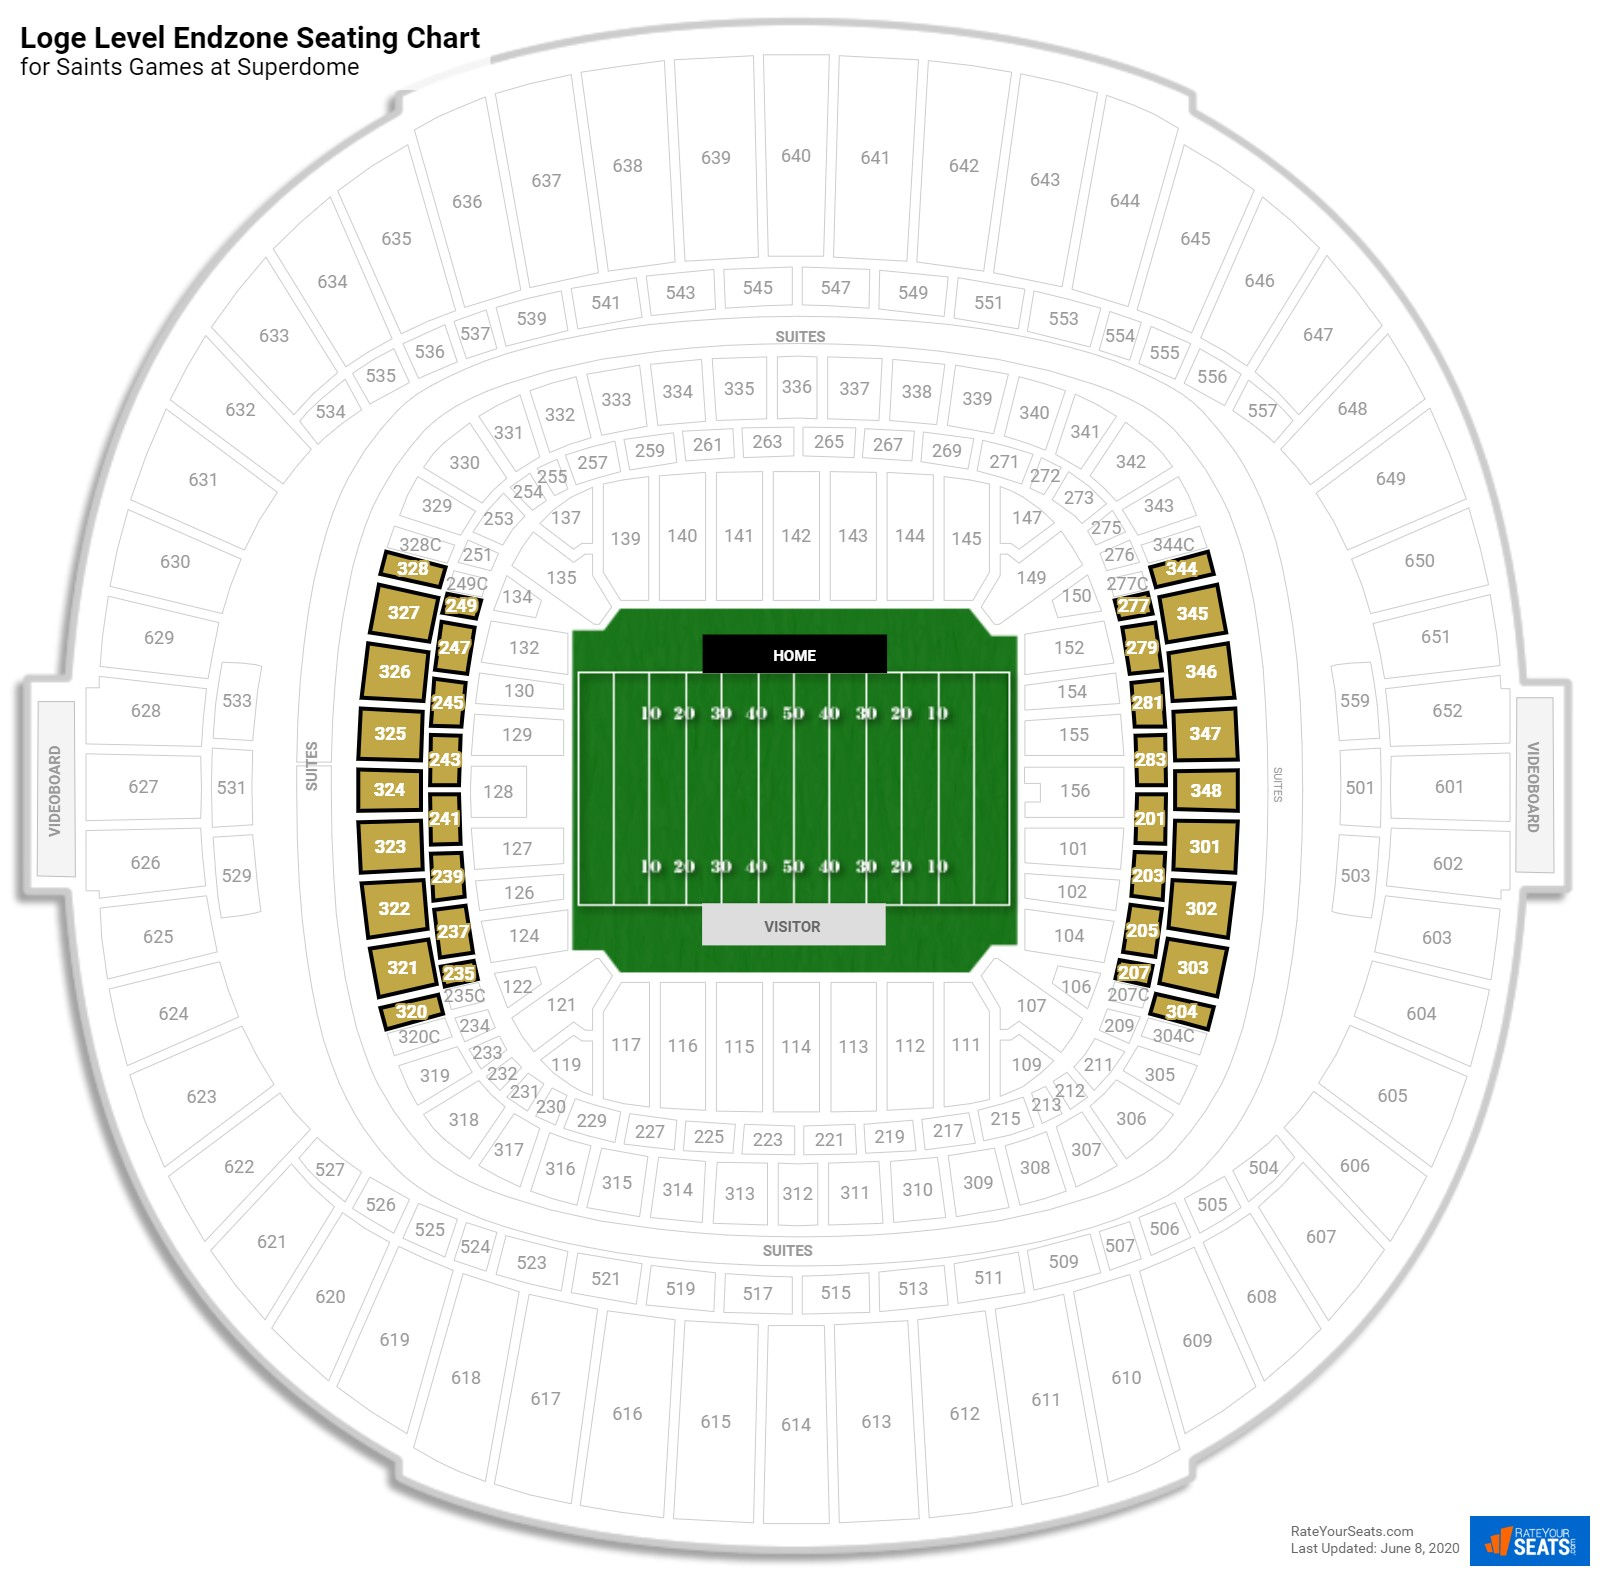 Superdome Loge Level Endzone seating chart